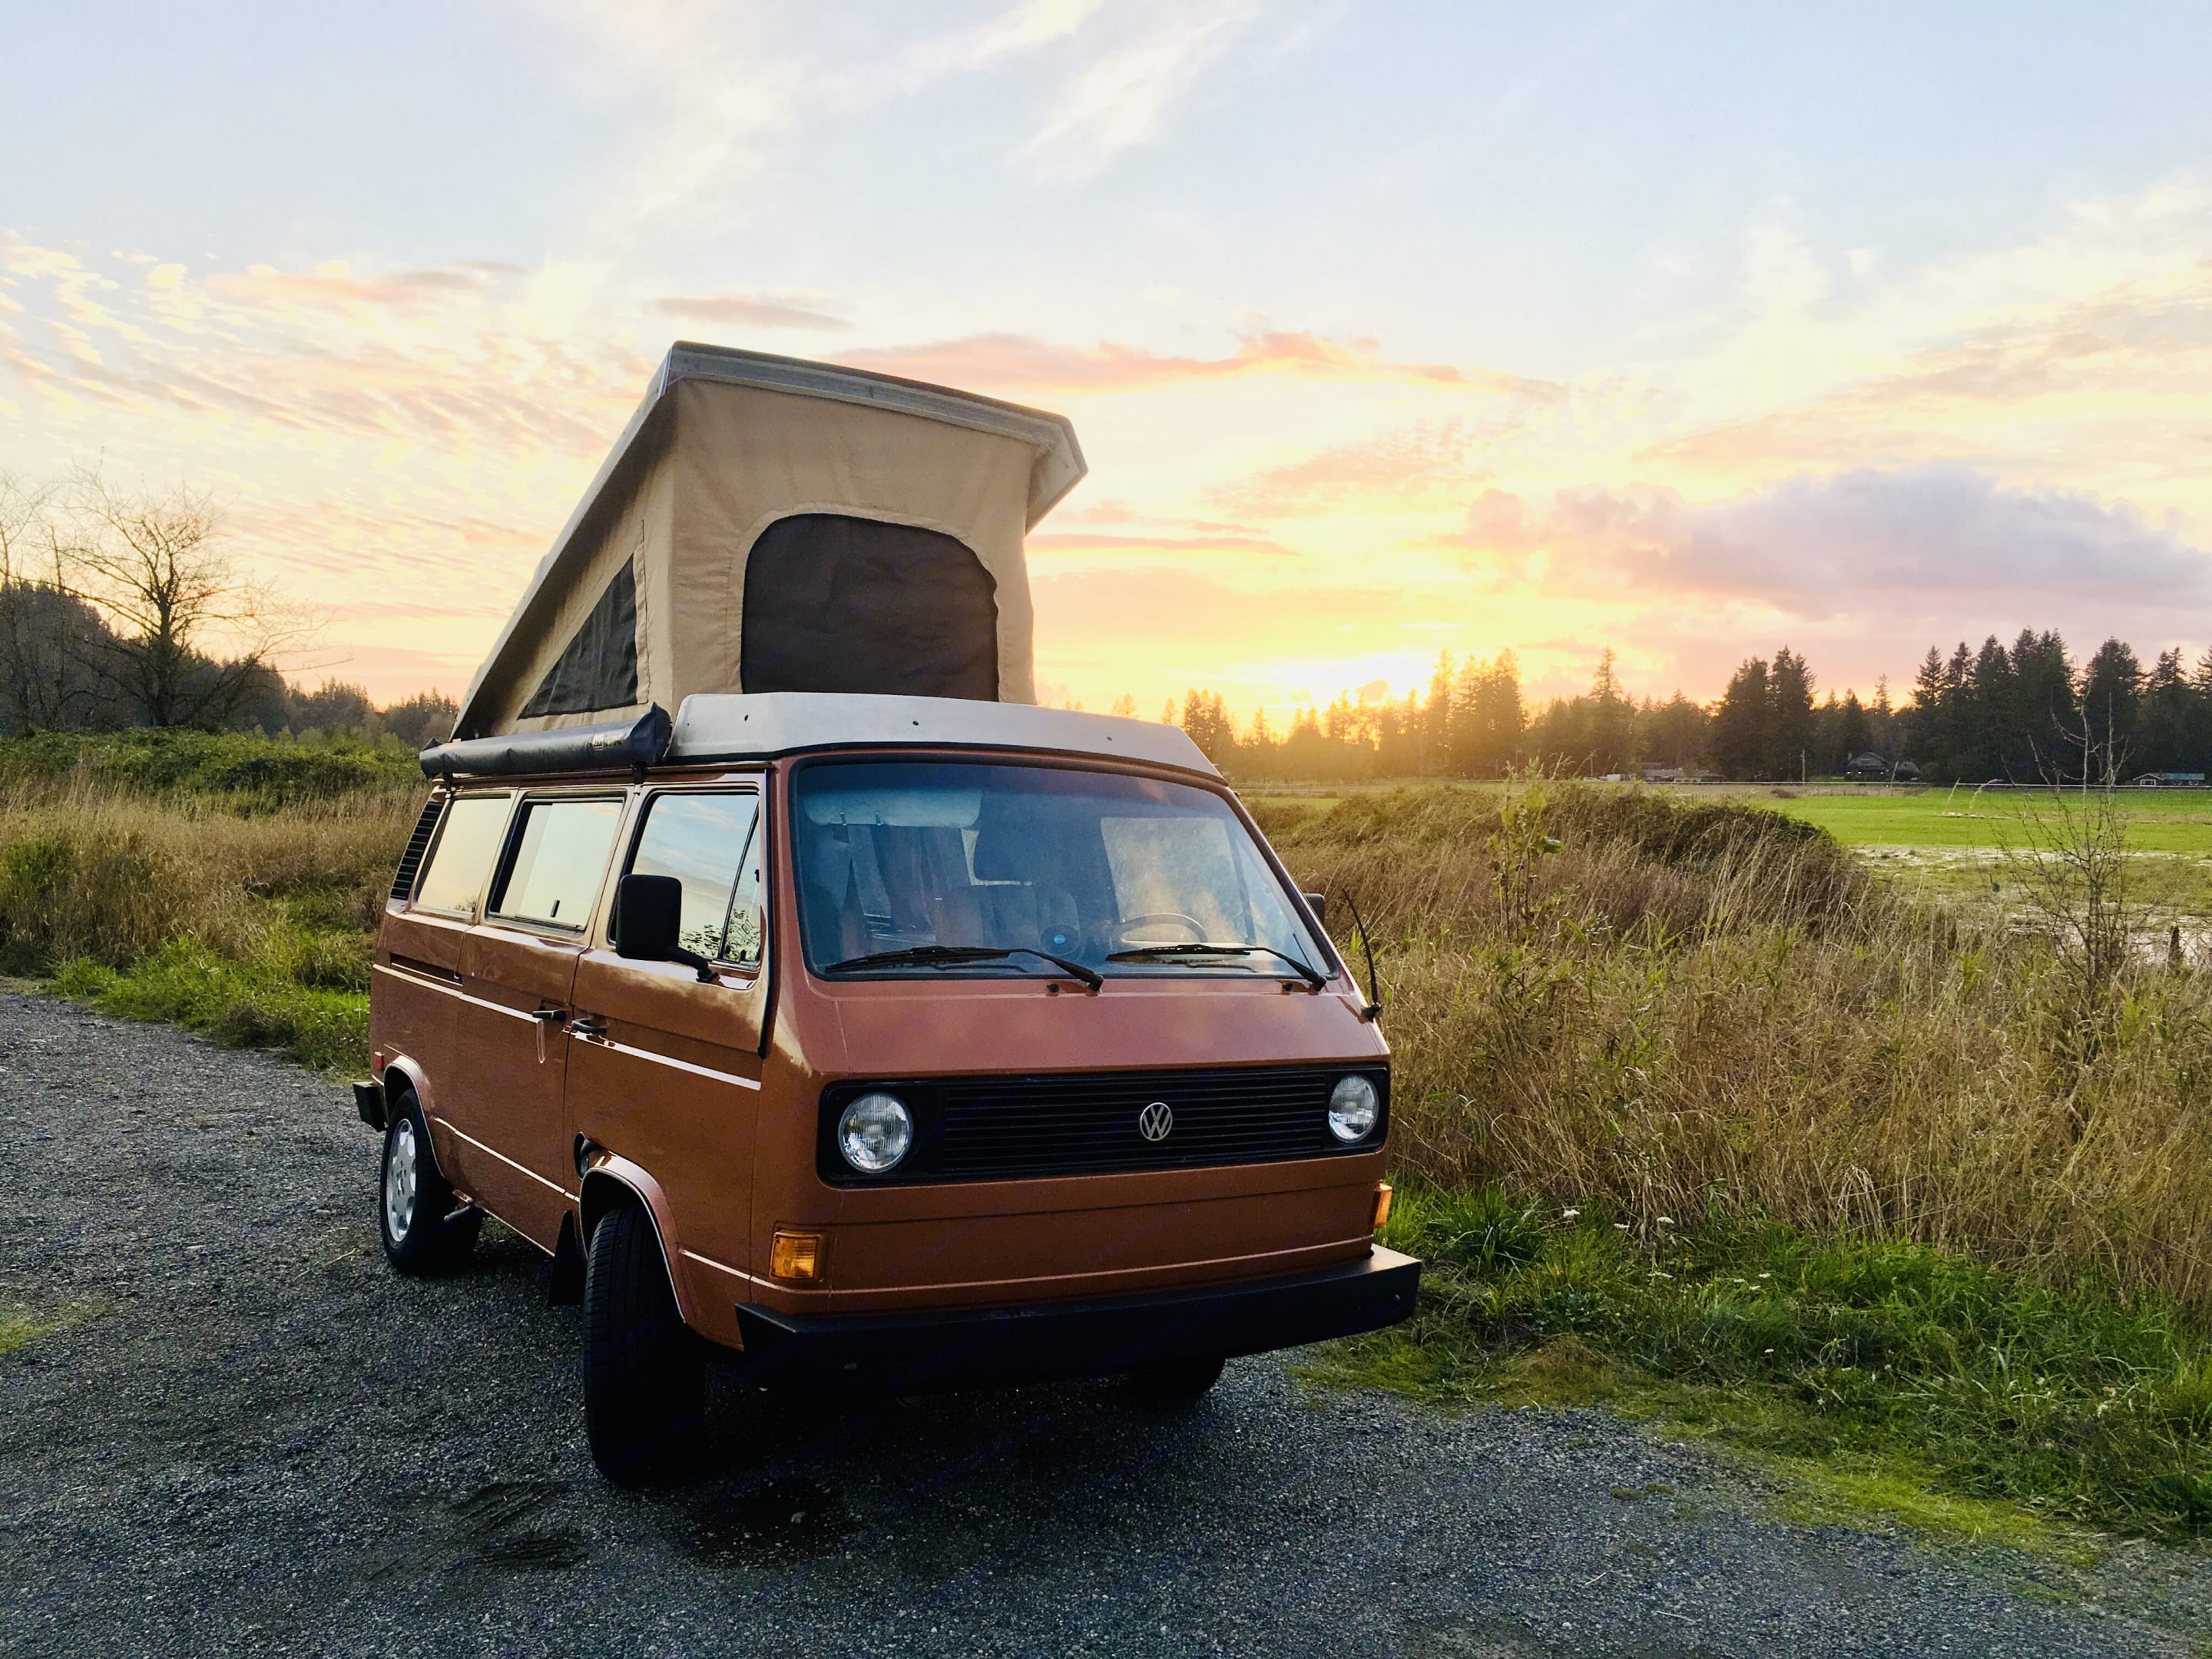 Dundee can park anywhere after a long drive and still give you all the necessities to enjoy a nice evening.. Volkswagen Westfalia 1982